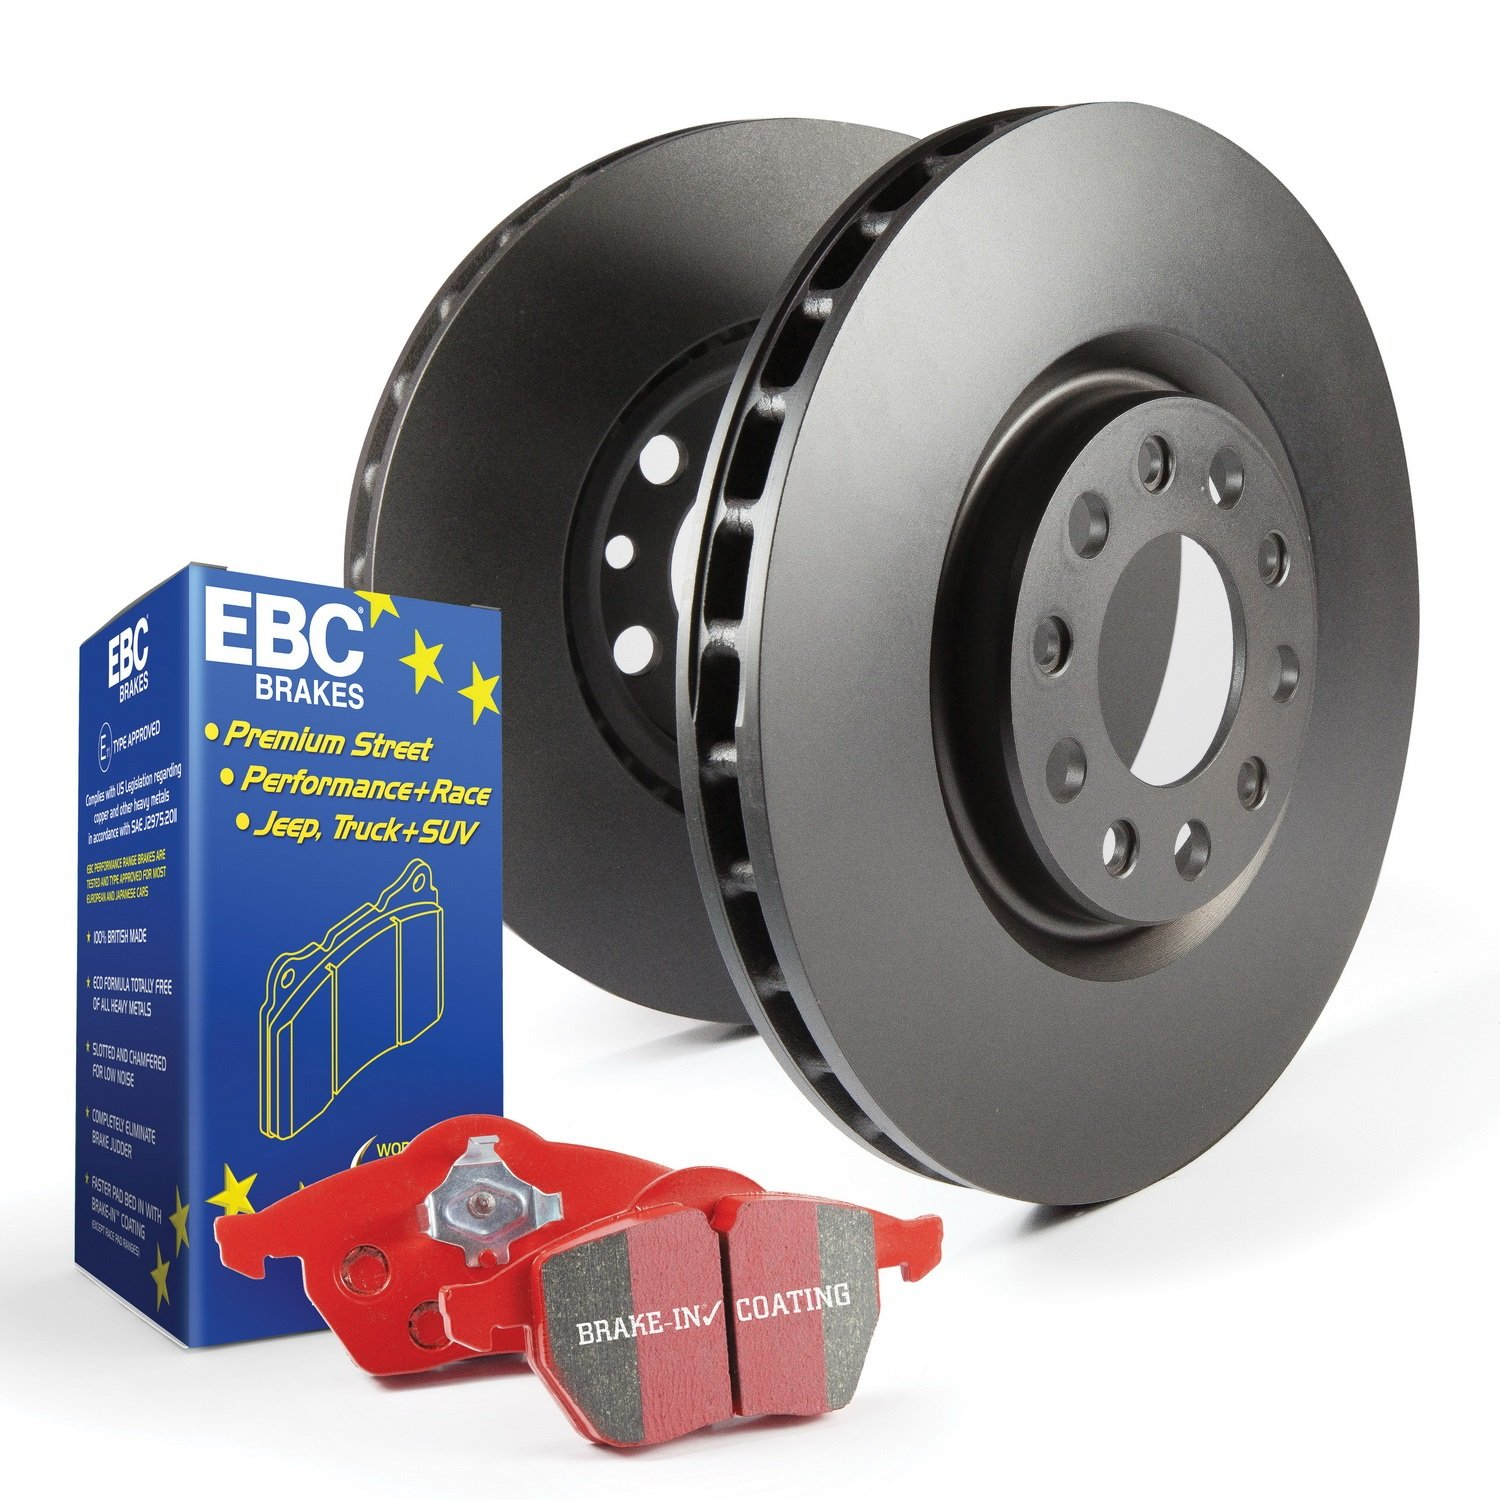 EBC Brakes S12KR1090 S12 Rear Kits Redstuff and RK Rotors-Auto Version of S14 Rear Kits